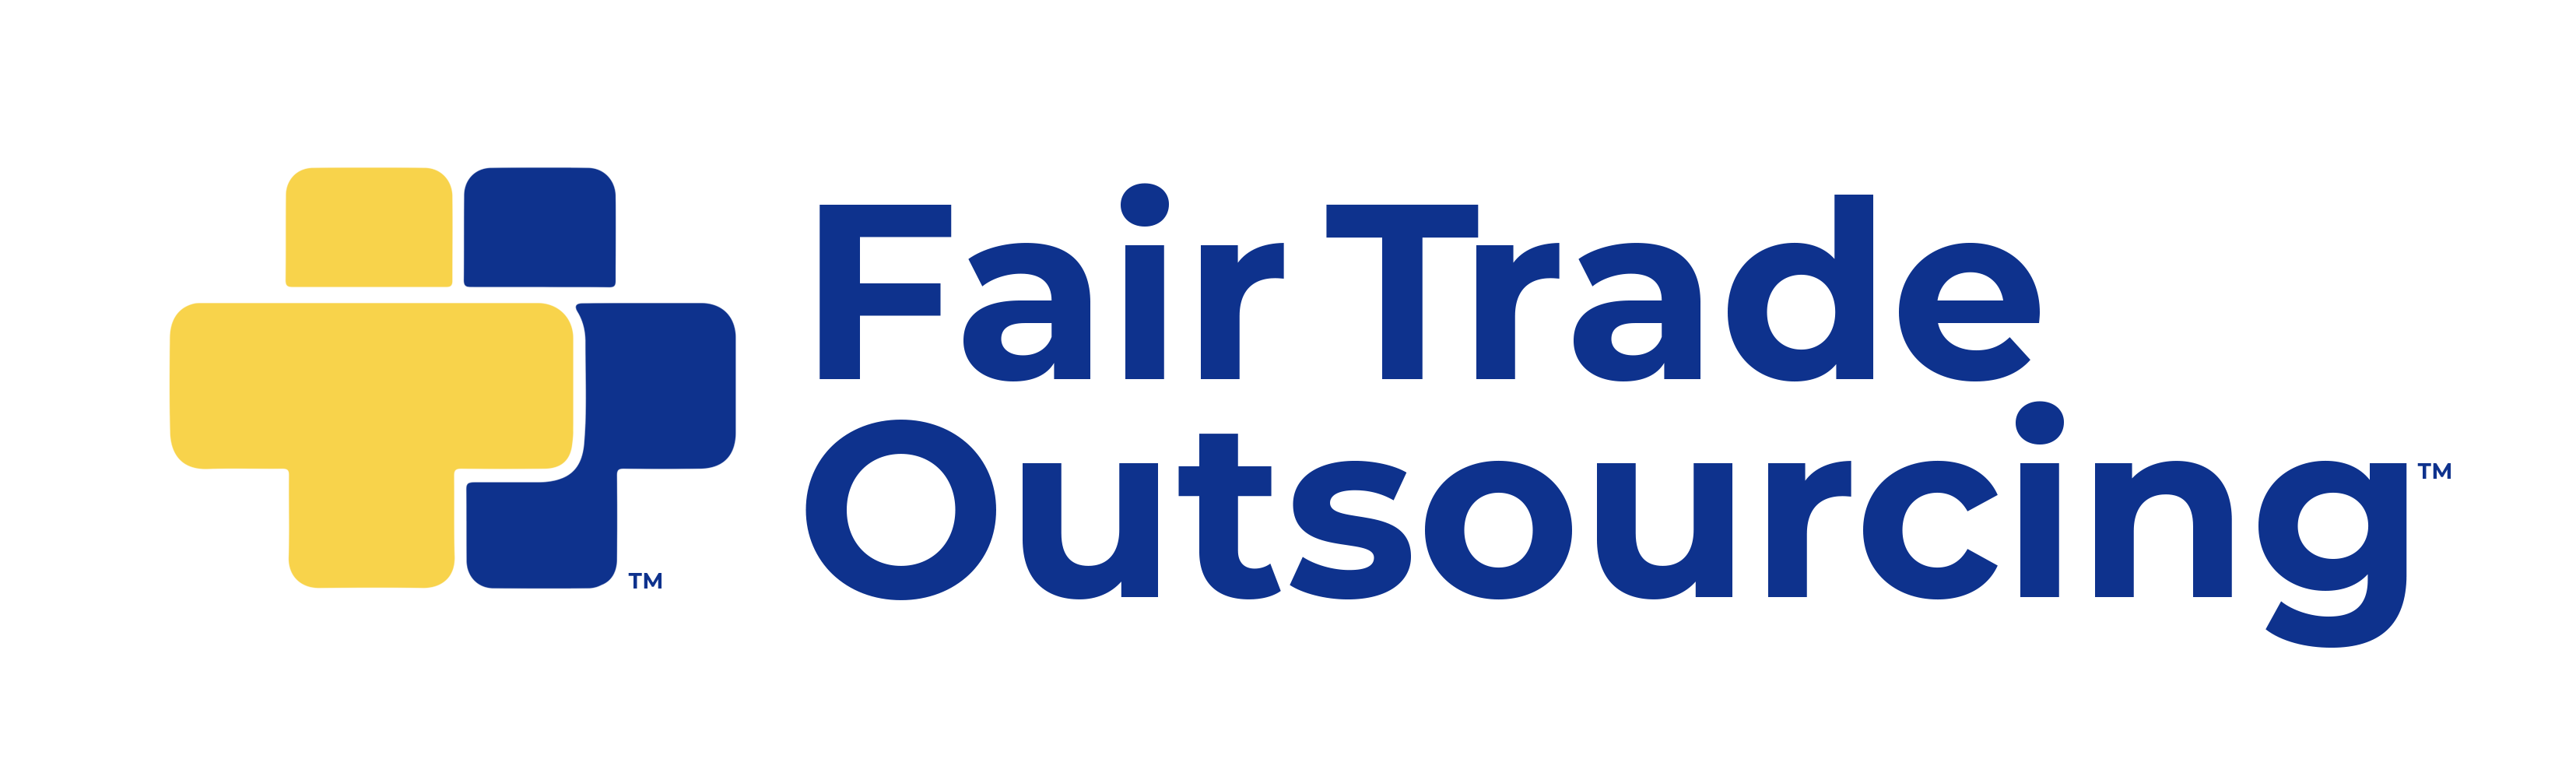 Fair Trade Outsourcing